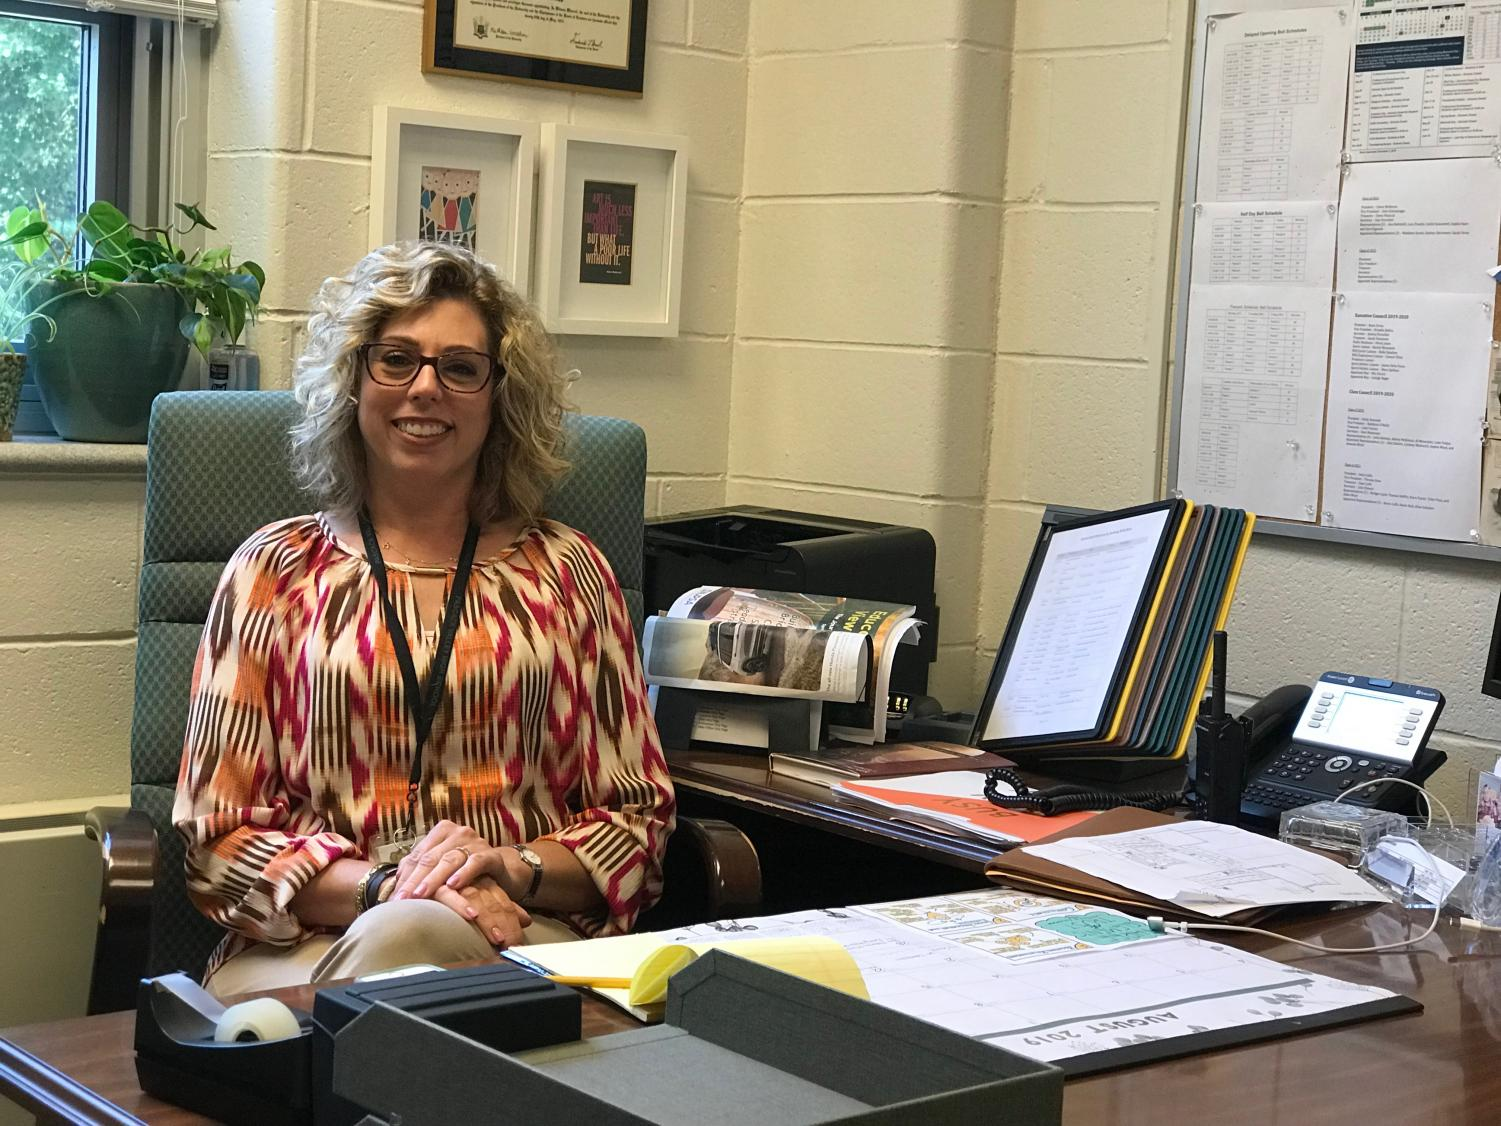 Christine Pollinger is the new assistant principal for the 2019-2020 school year. She originally was the program coordinator at Park Academy in River Vale.